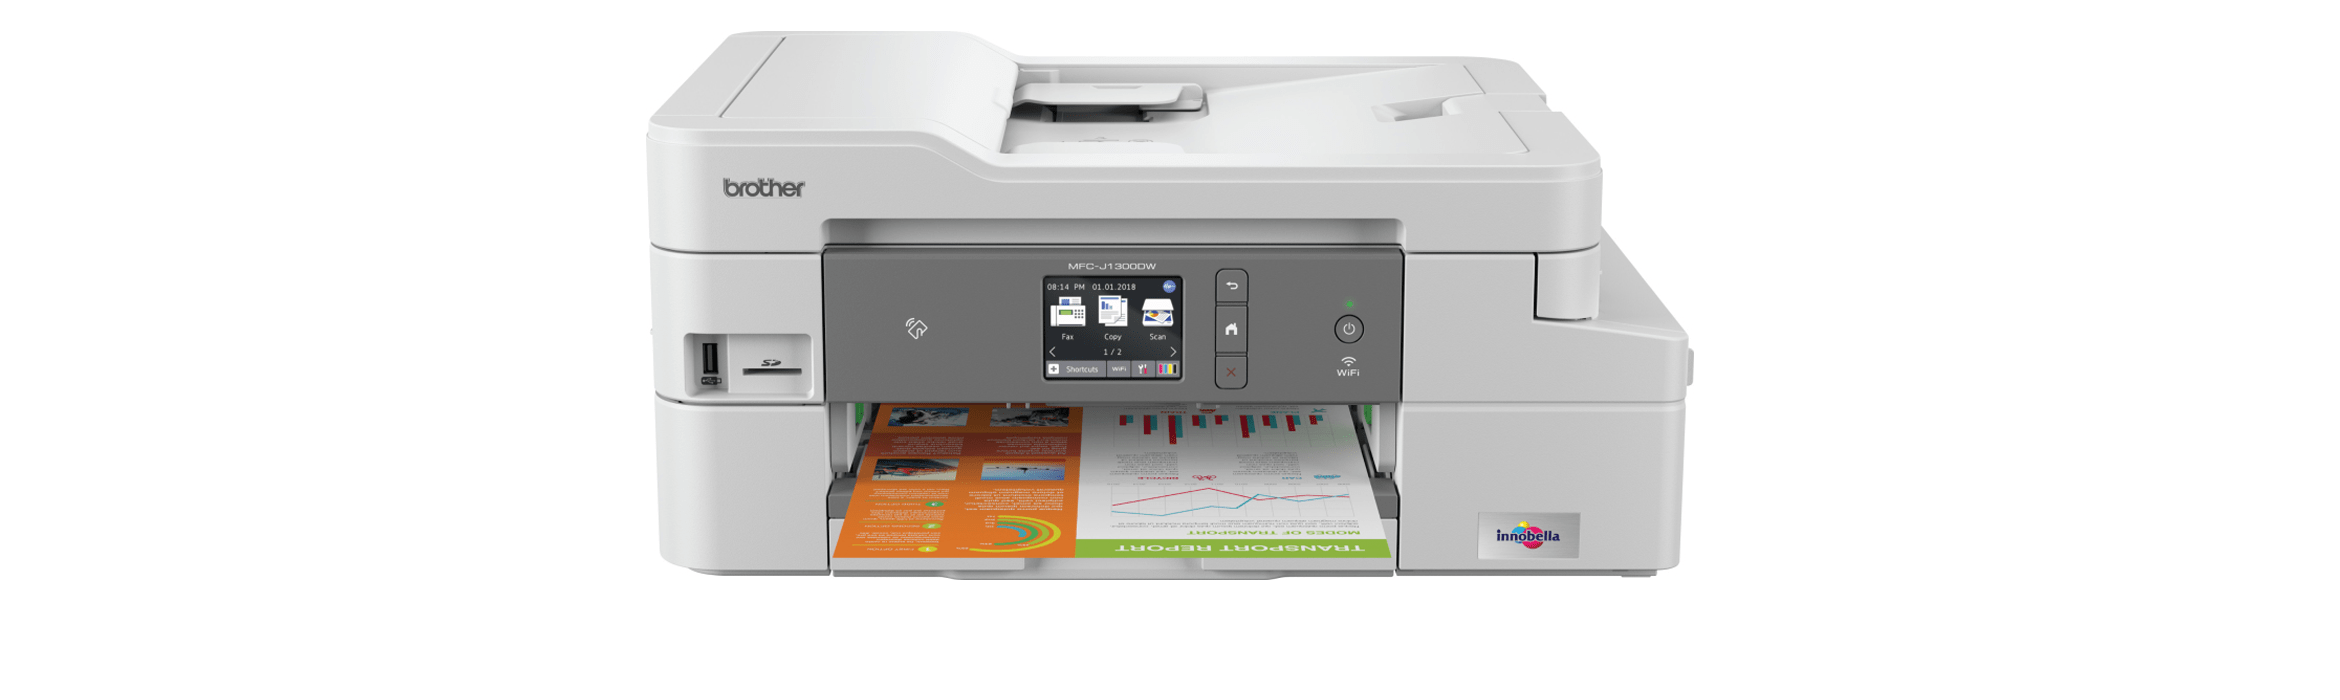 Brother MFC-J1300DW printer